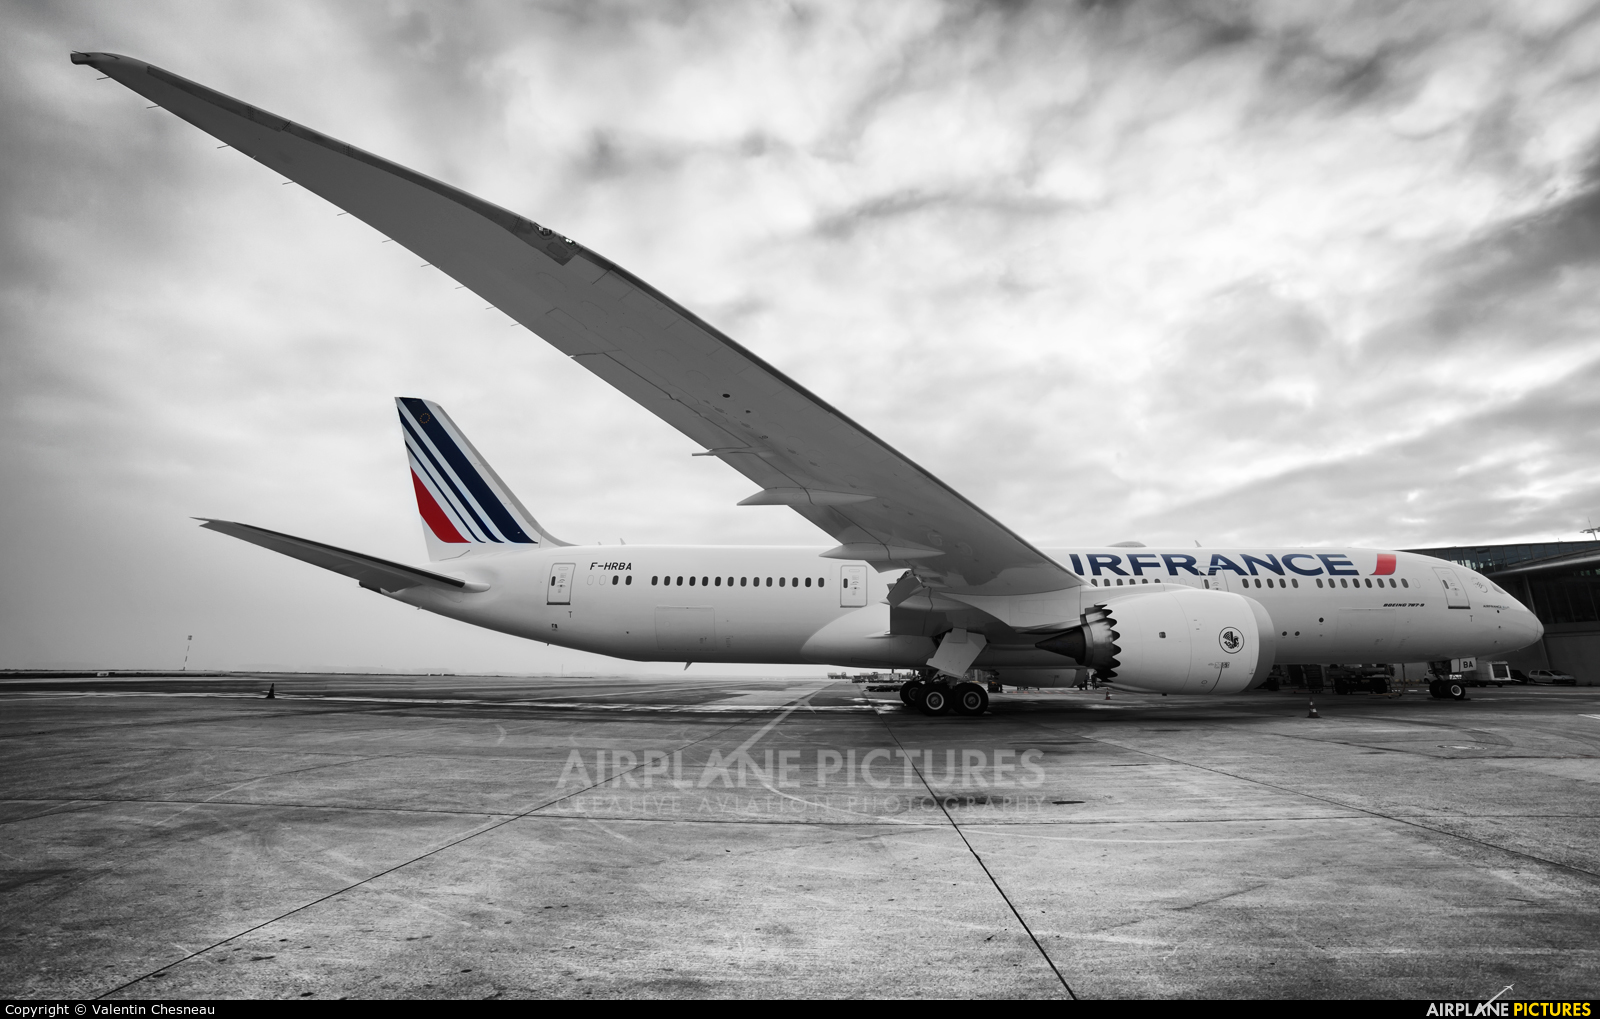 the best of airplanes pictures ap photo album by facundo